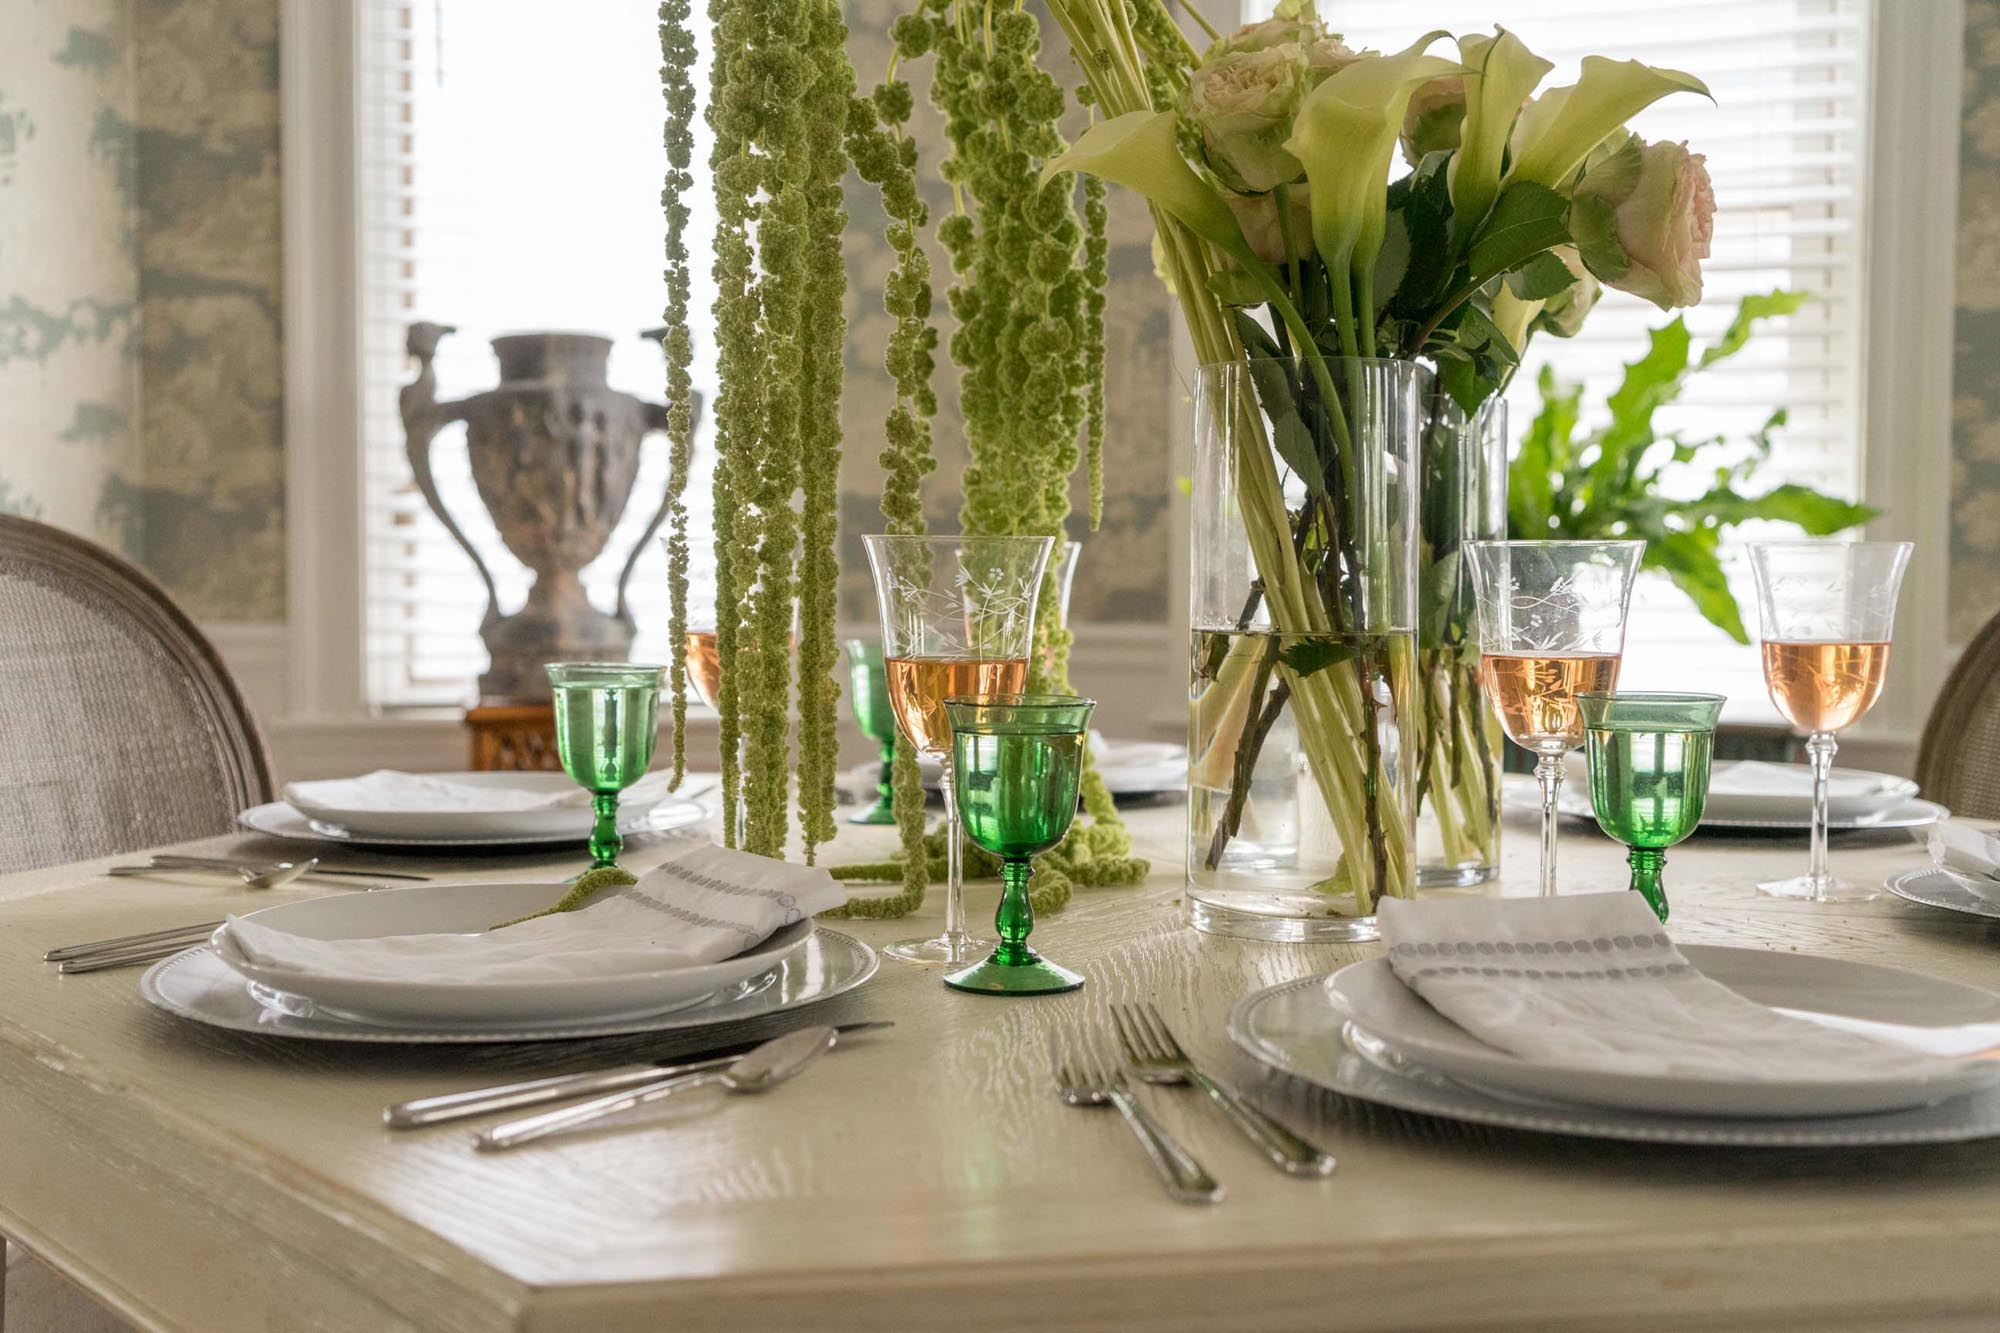 Traditional style dining room table setting with green glass filled with rose